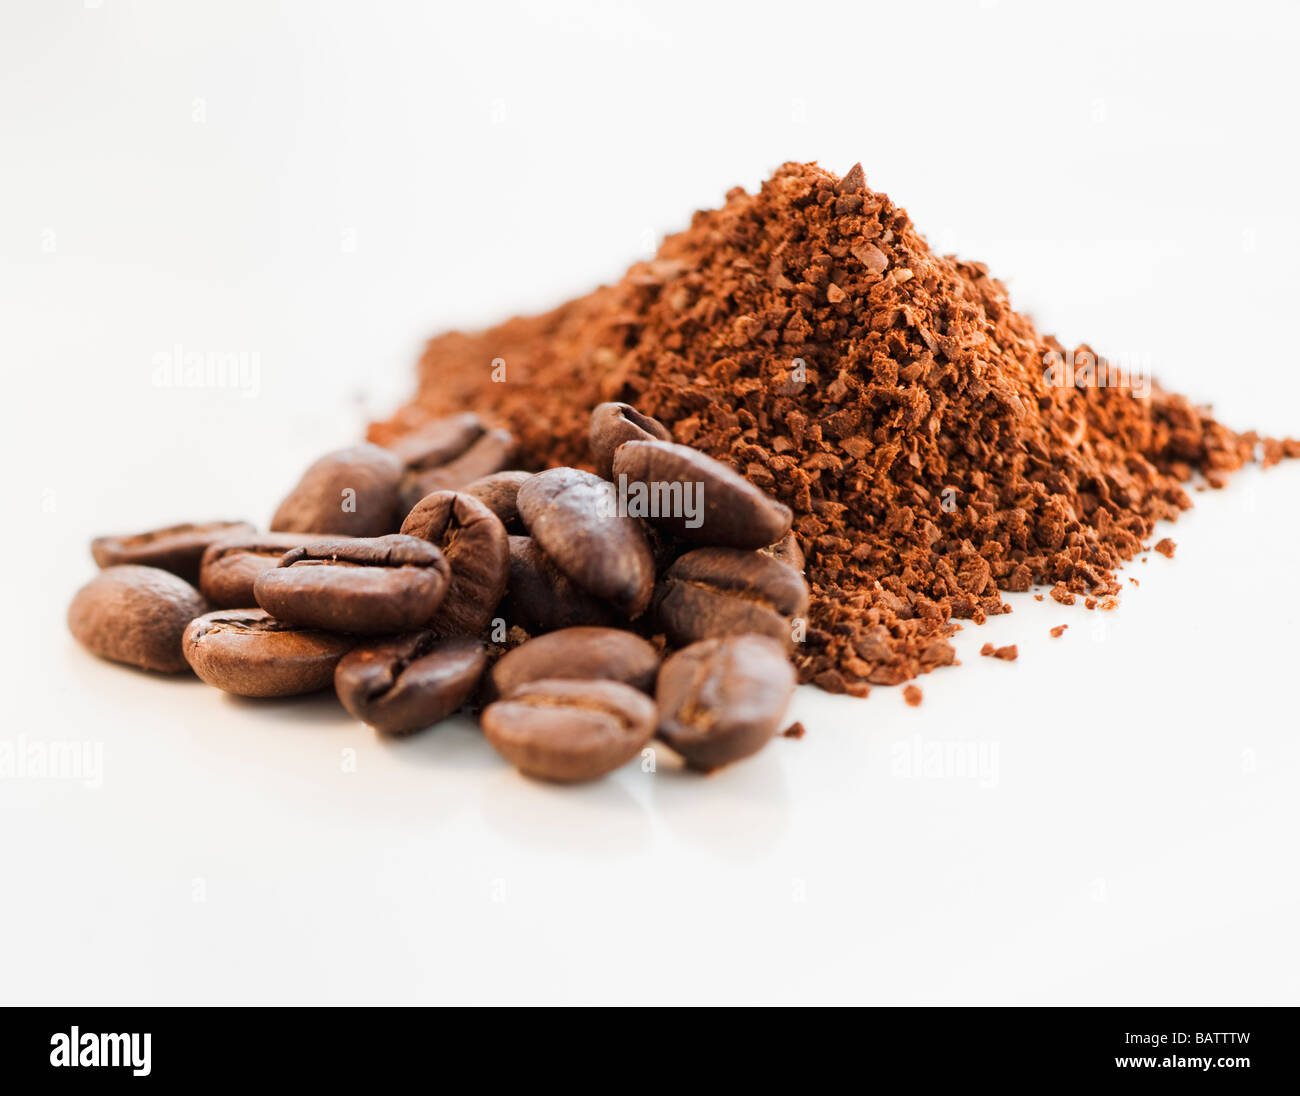 ground coffee stock photo - photo #4